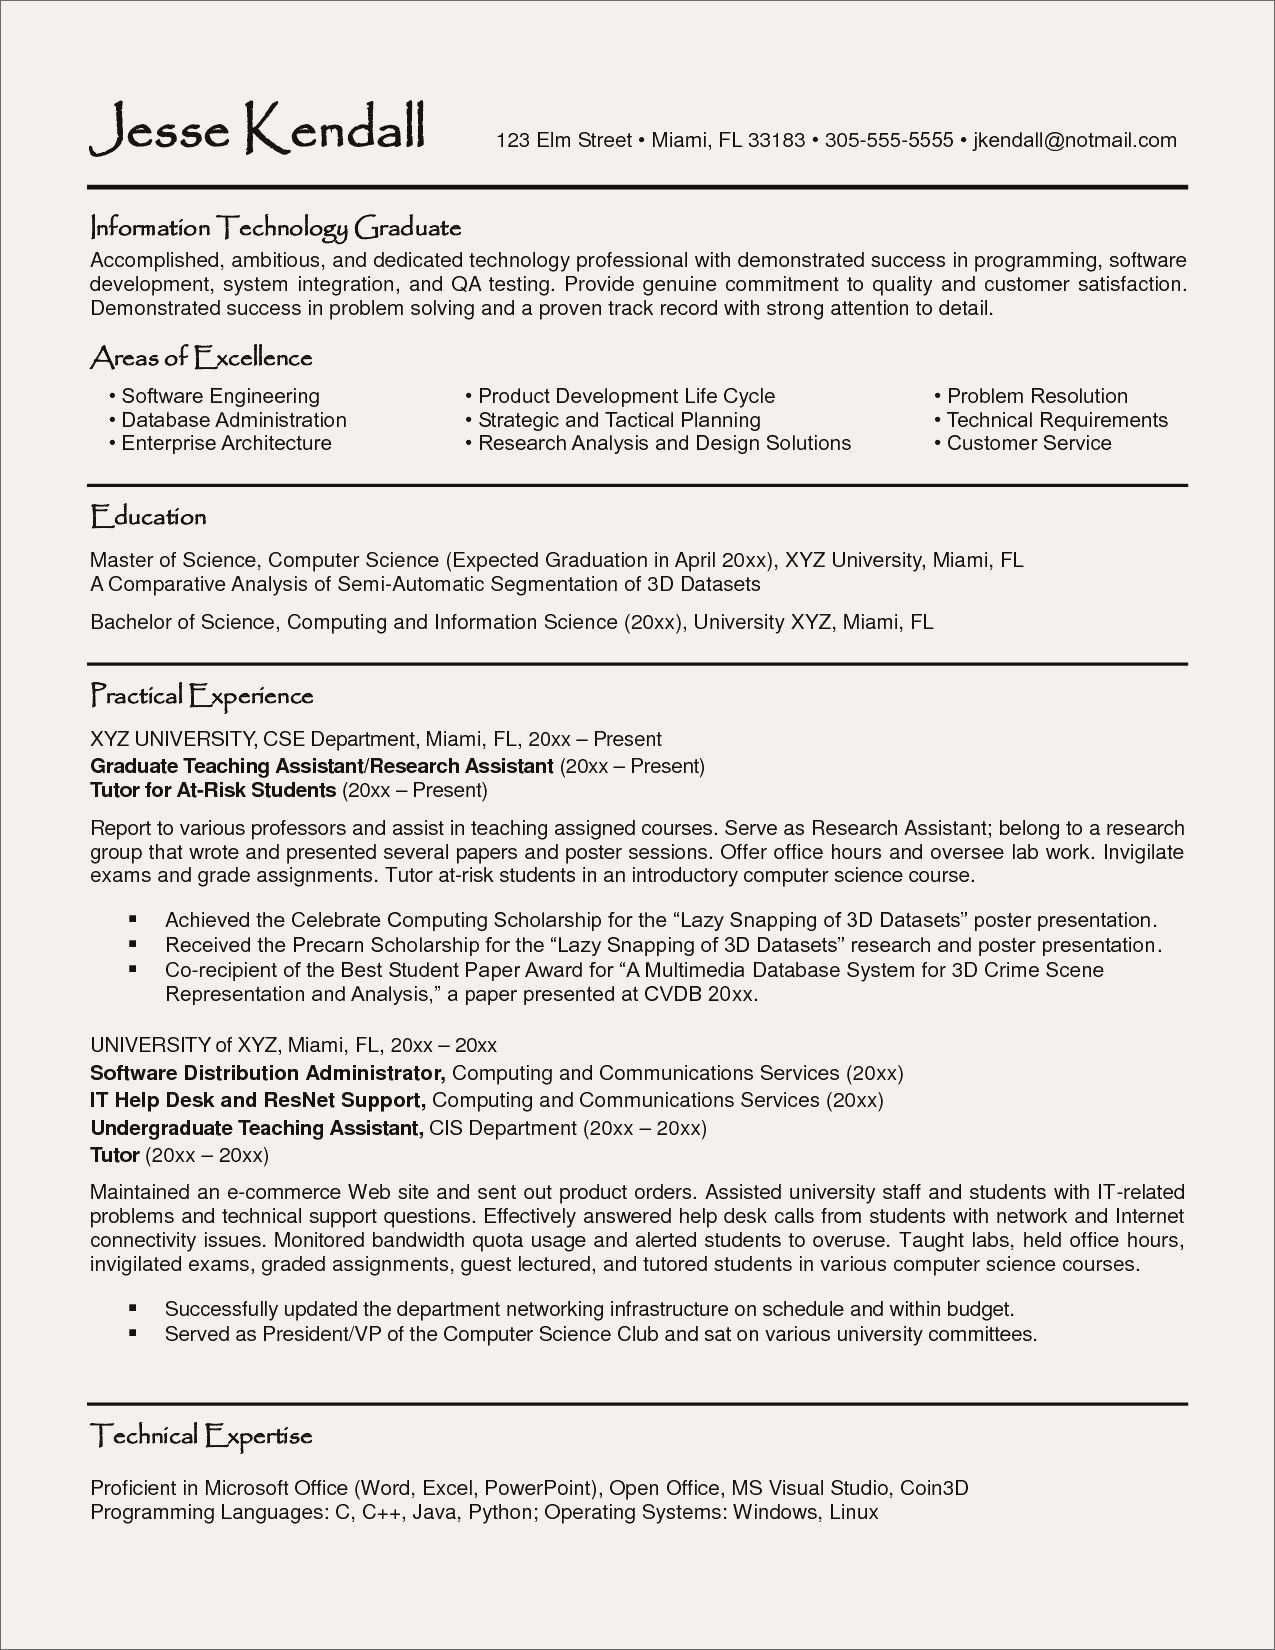 Resume Template Design Scholarship - Resume for Science Tutor Best Resume topics Best ¢‹†…¡ Resume